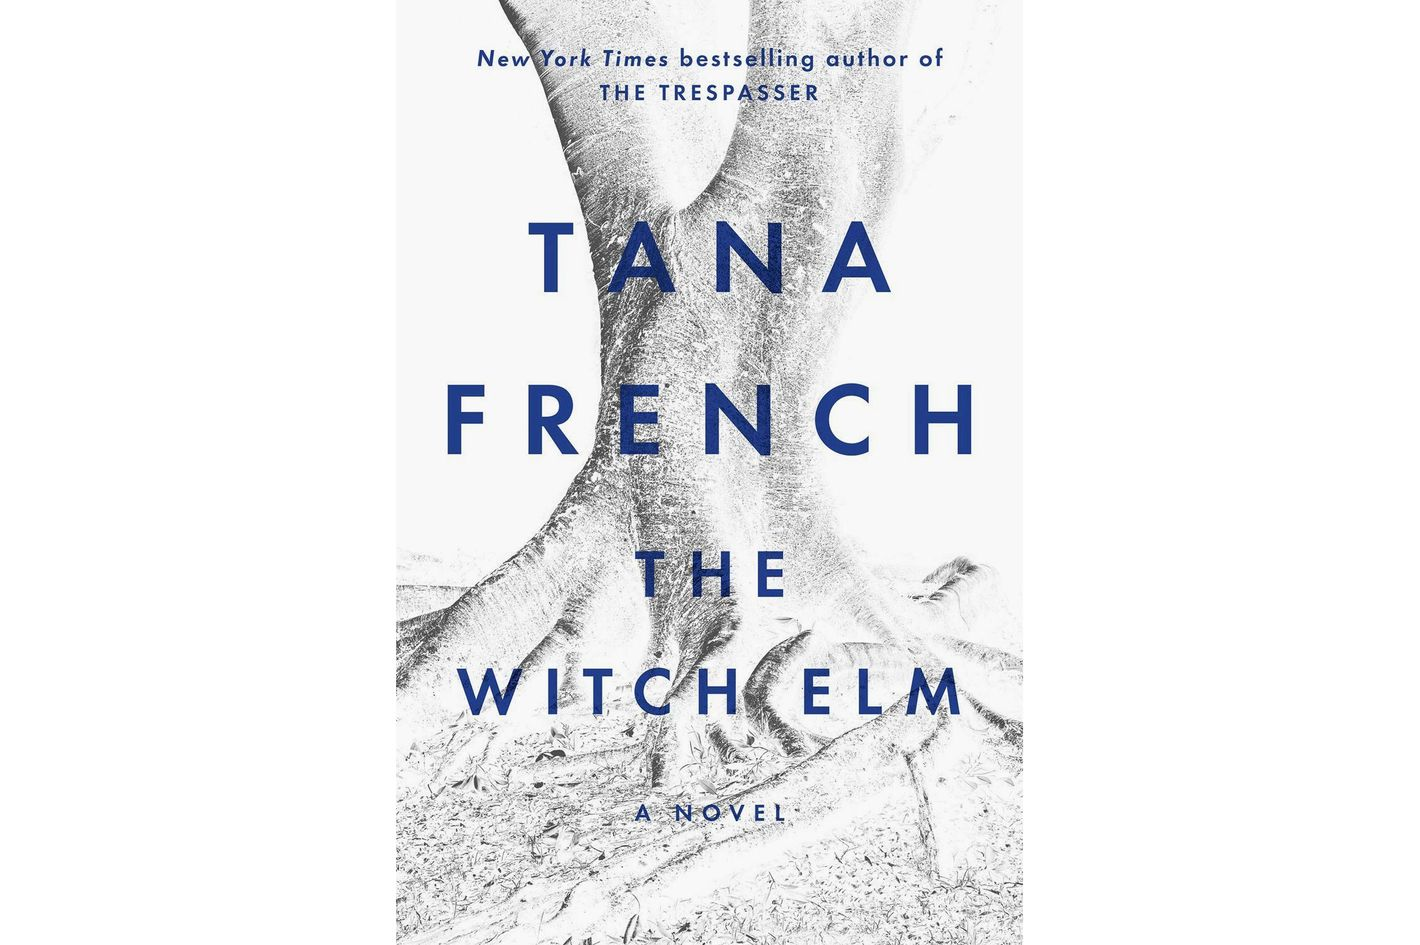 2. <em>The Witch Elm</em>, by Tana French (Viking)